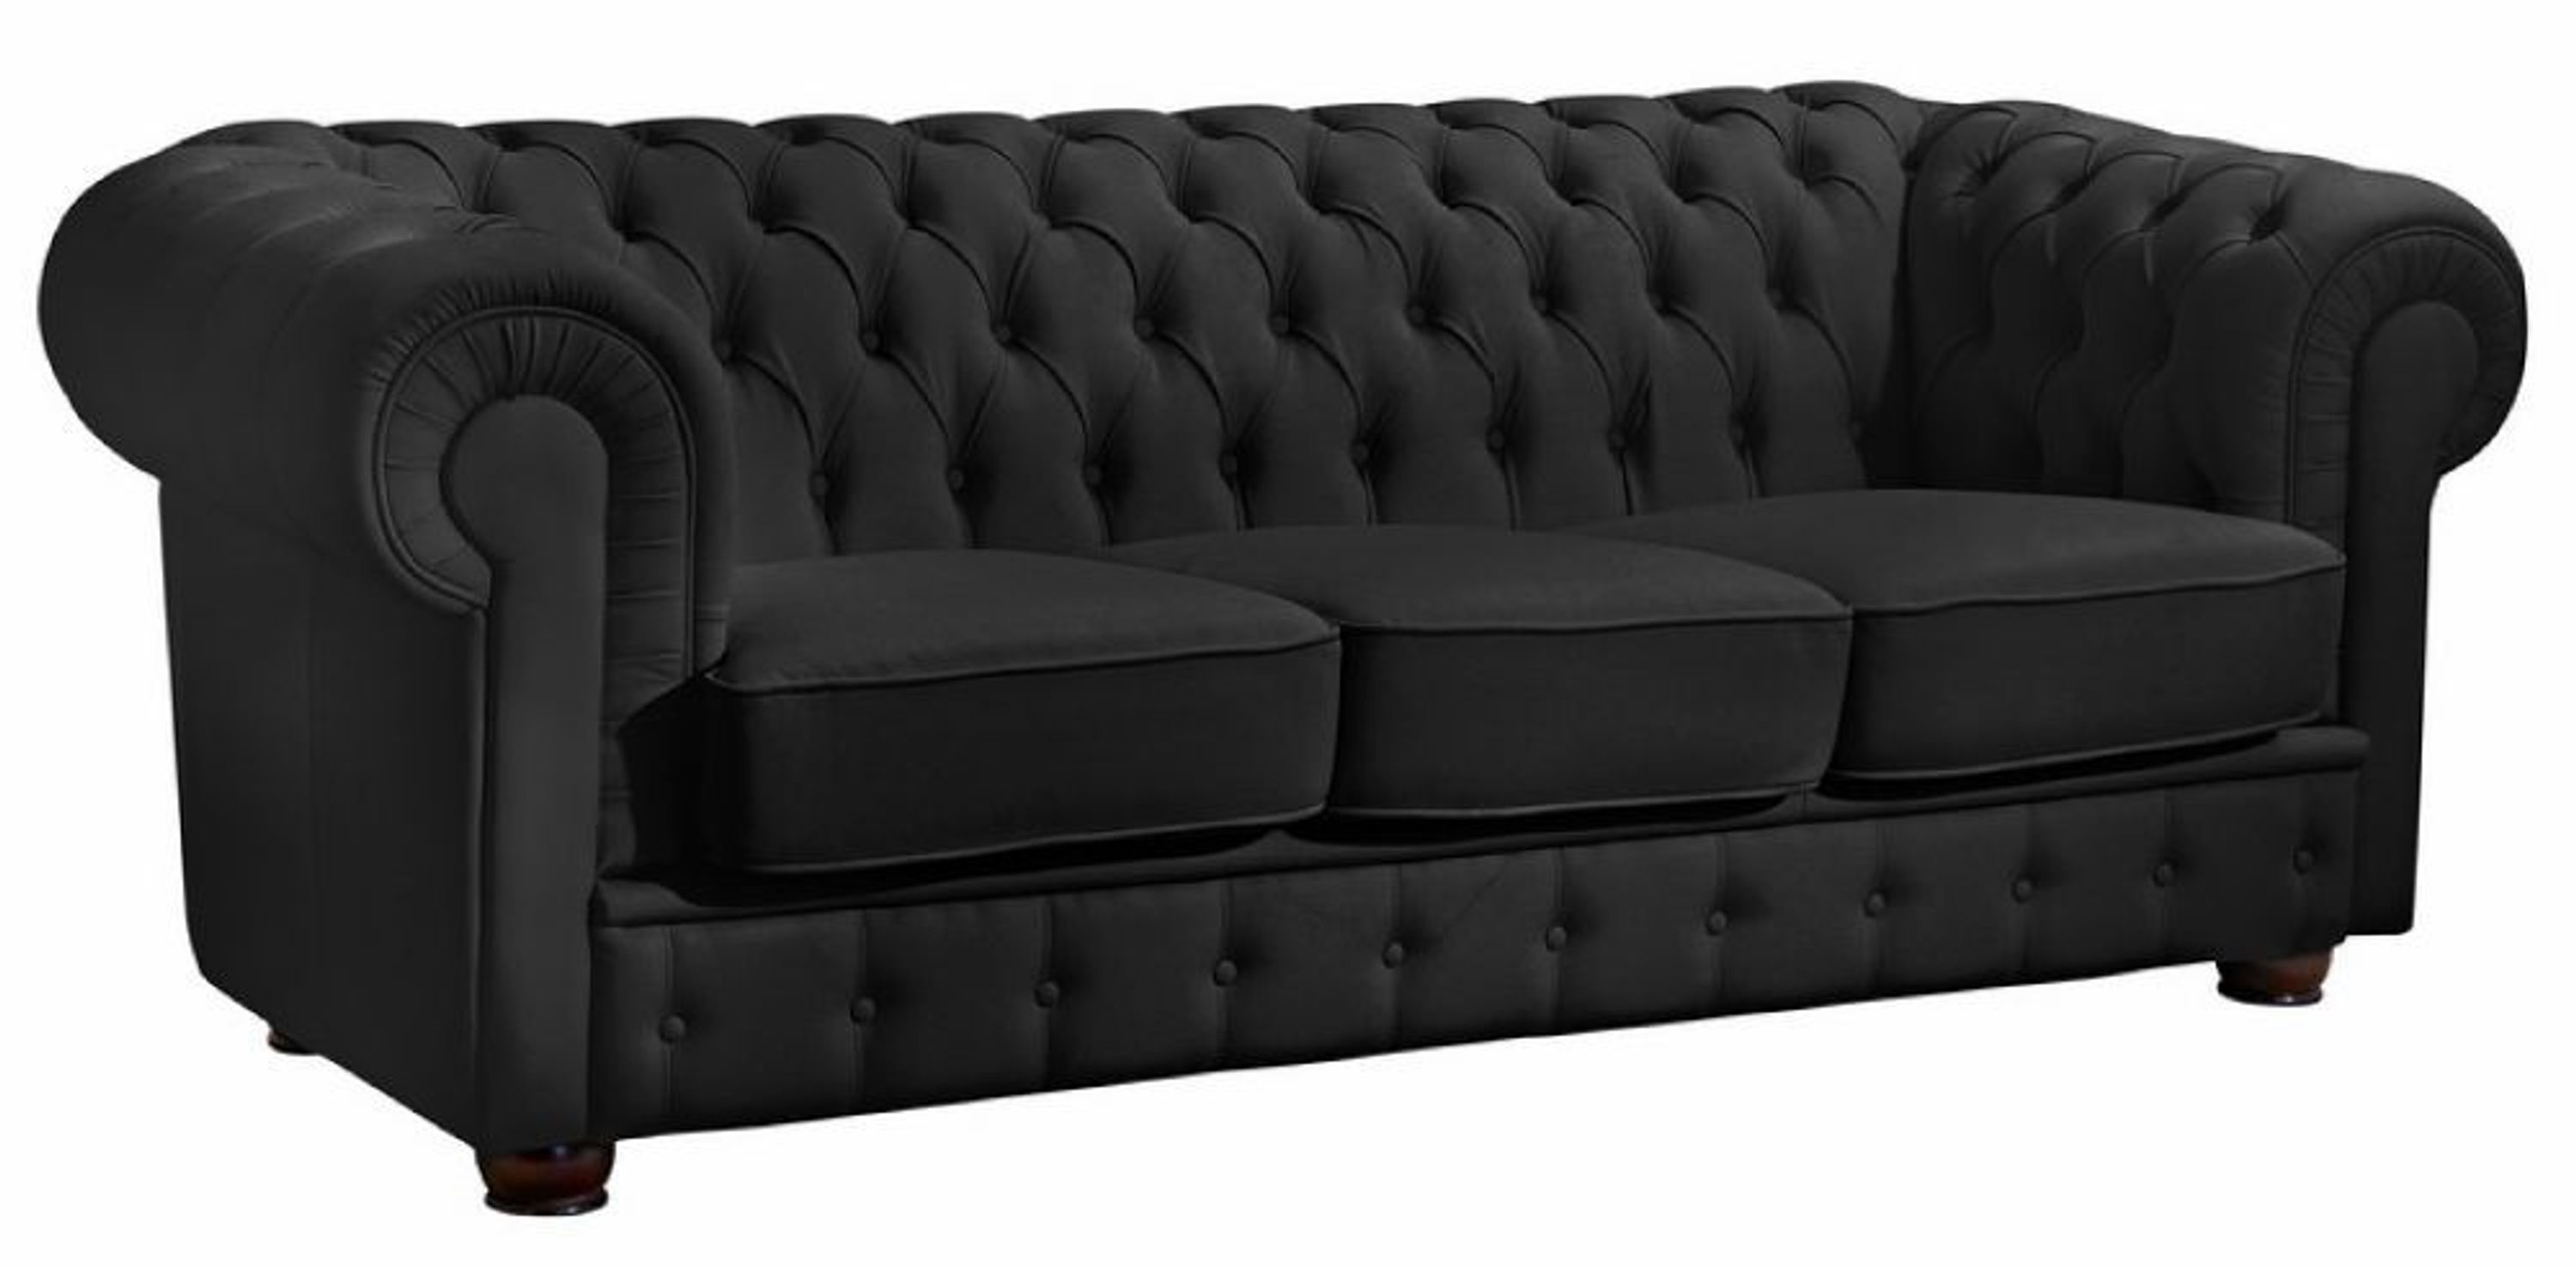 sofa 3 sitz bridgeport pigmentiertes nappaleder schwarz kaufen bei. Black Bedroom Furniture Sets. Home Design Ideas